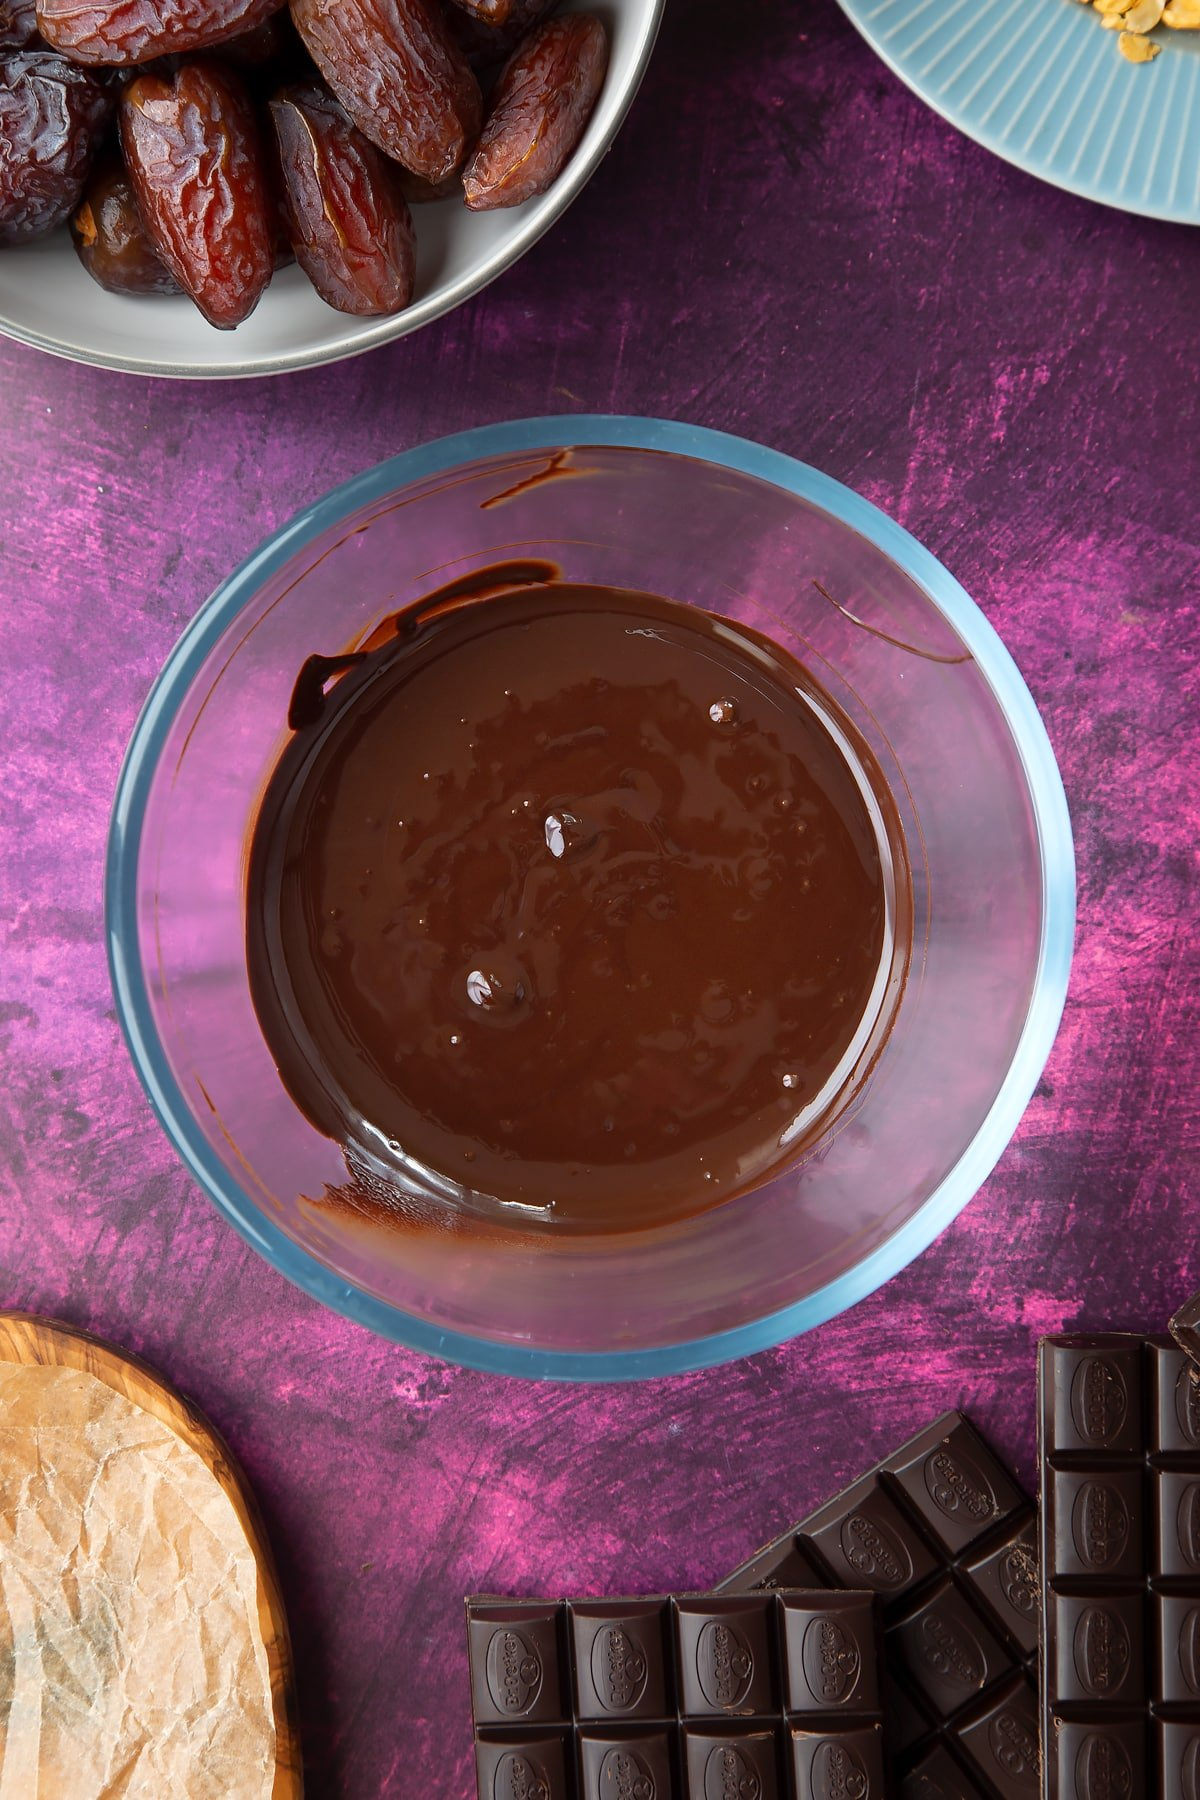 Melted chocolate in a bowl, surrounded by ingredients to make chocolate dates.